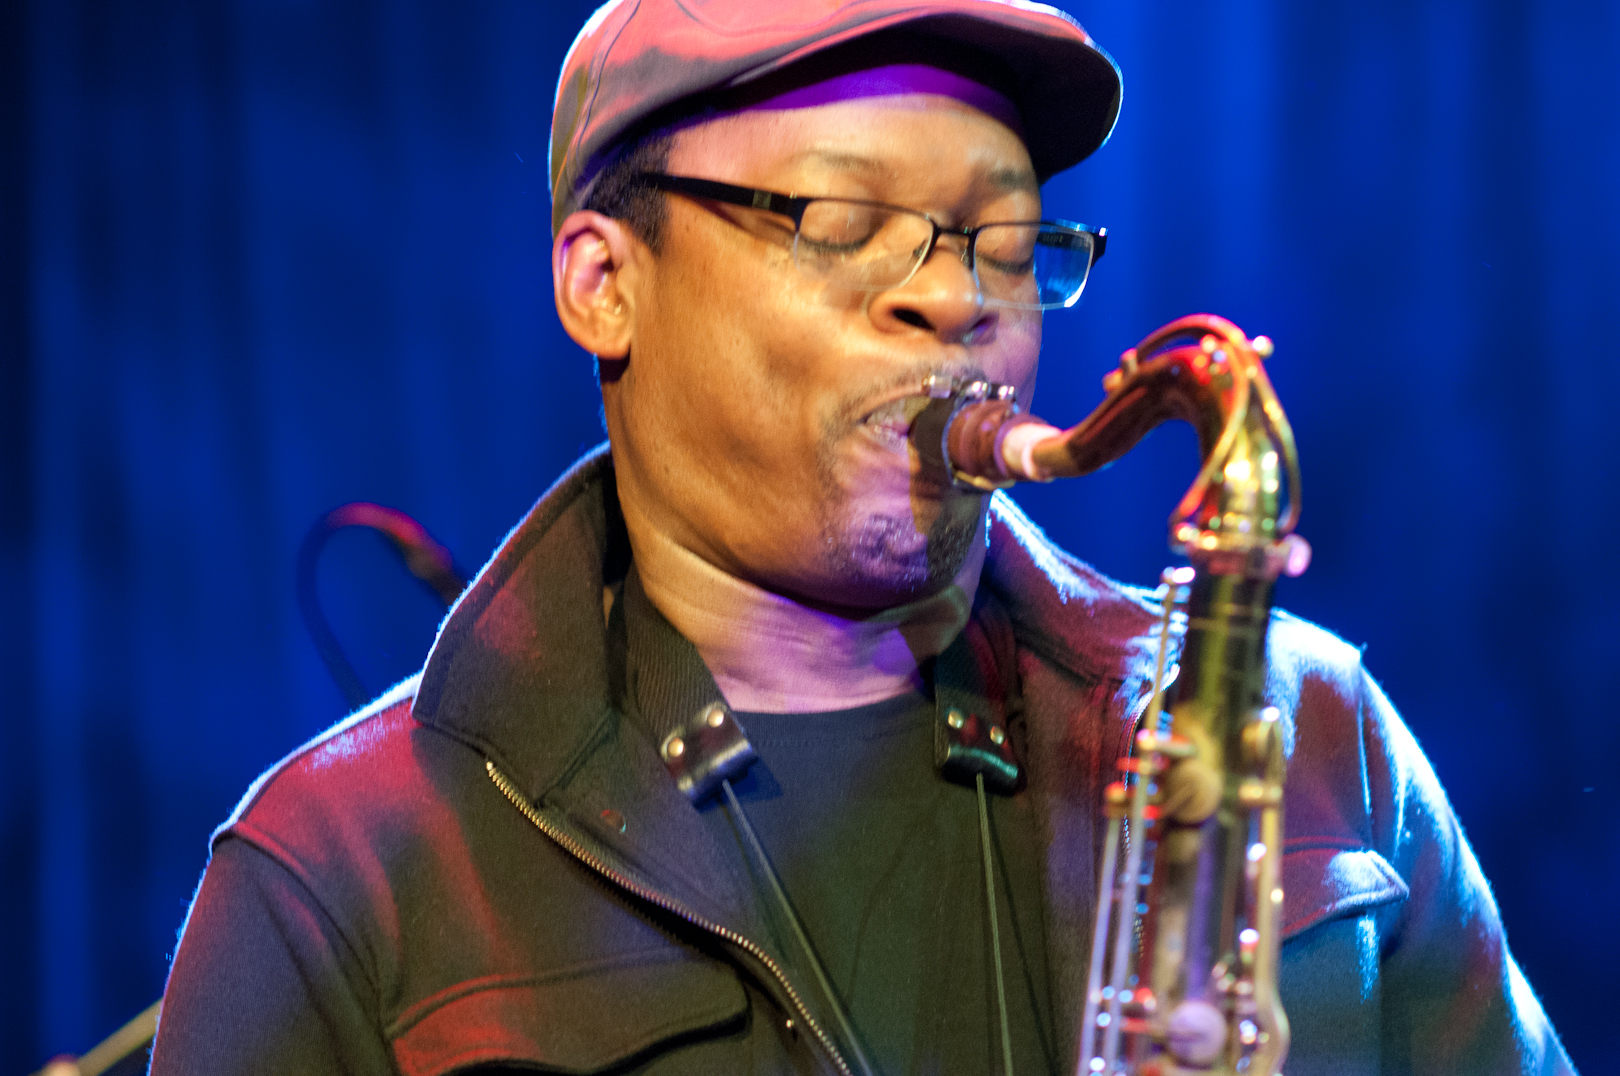 Ravi Coltrane at the Winter Jazzfest 2012